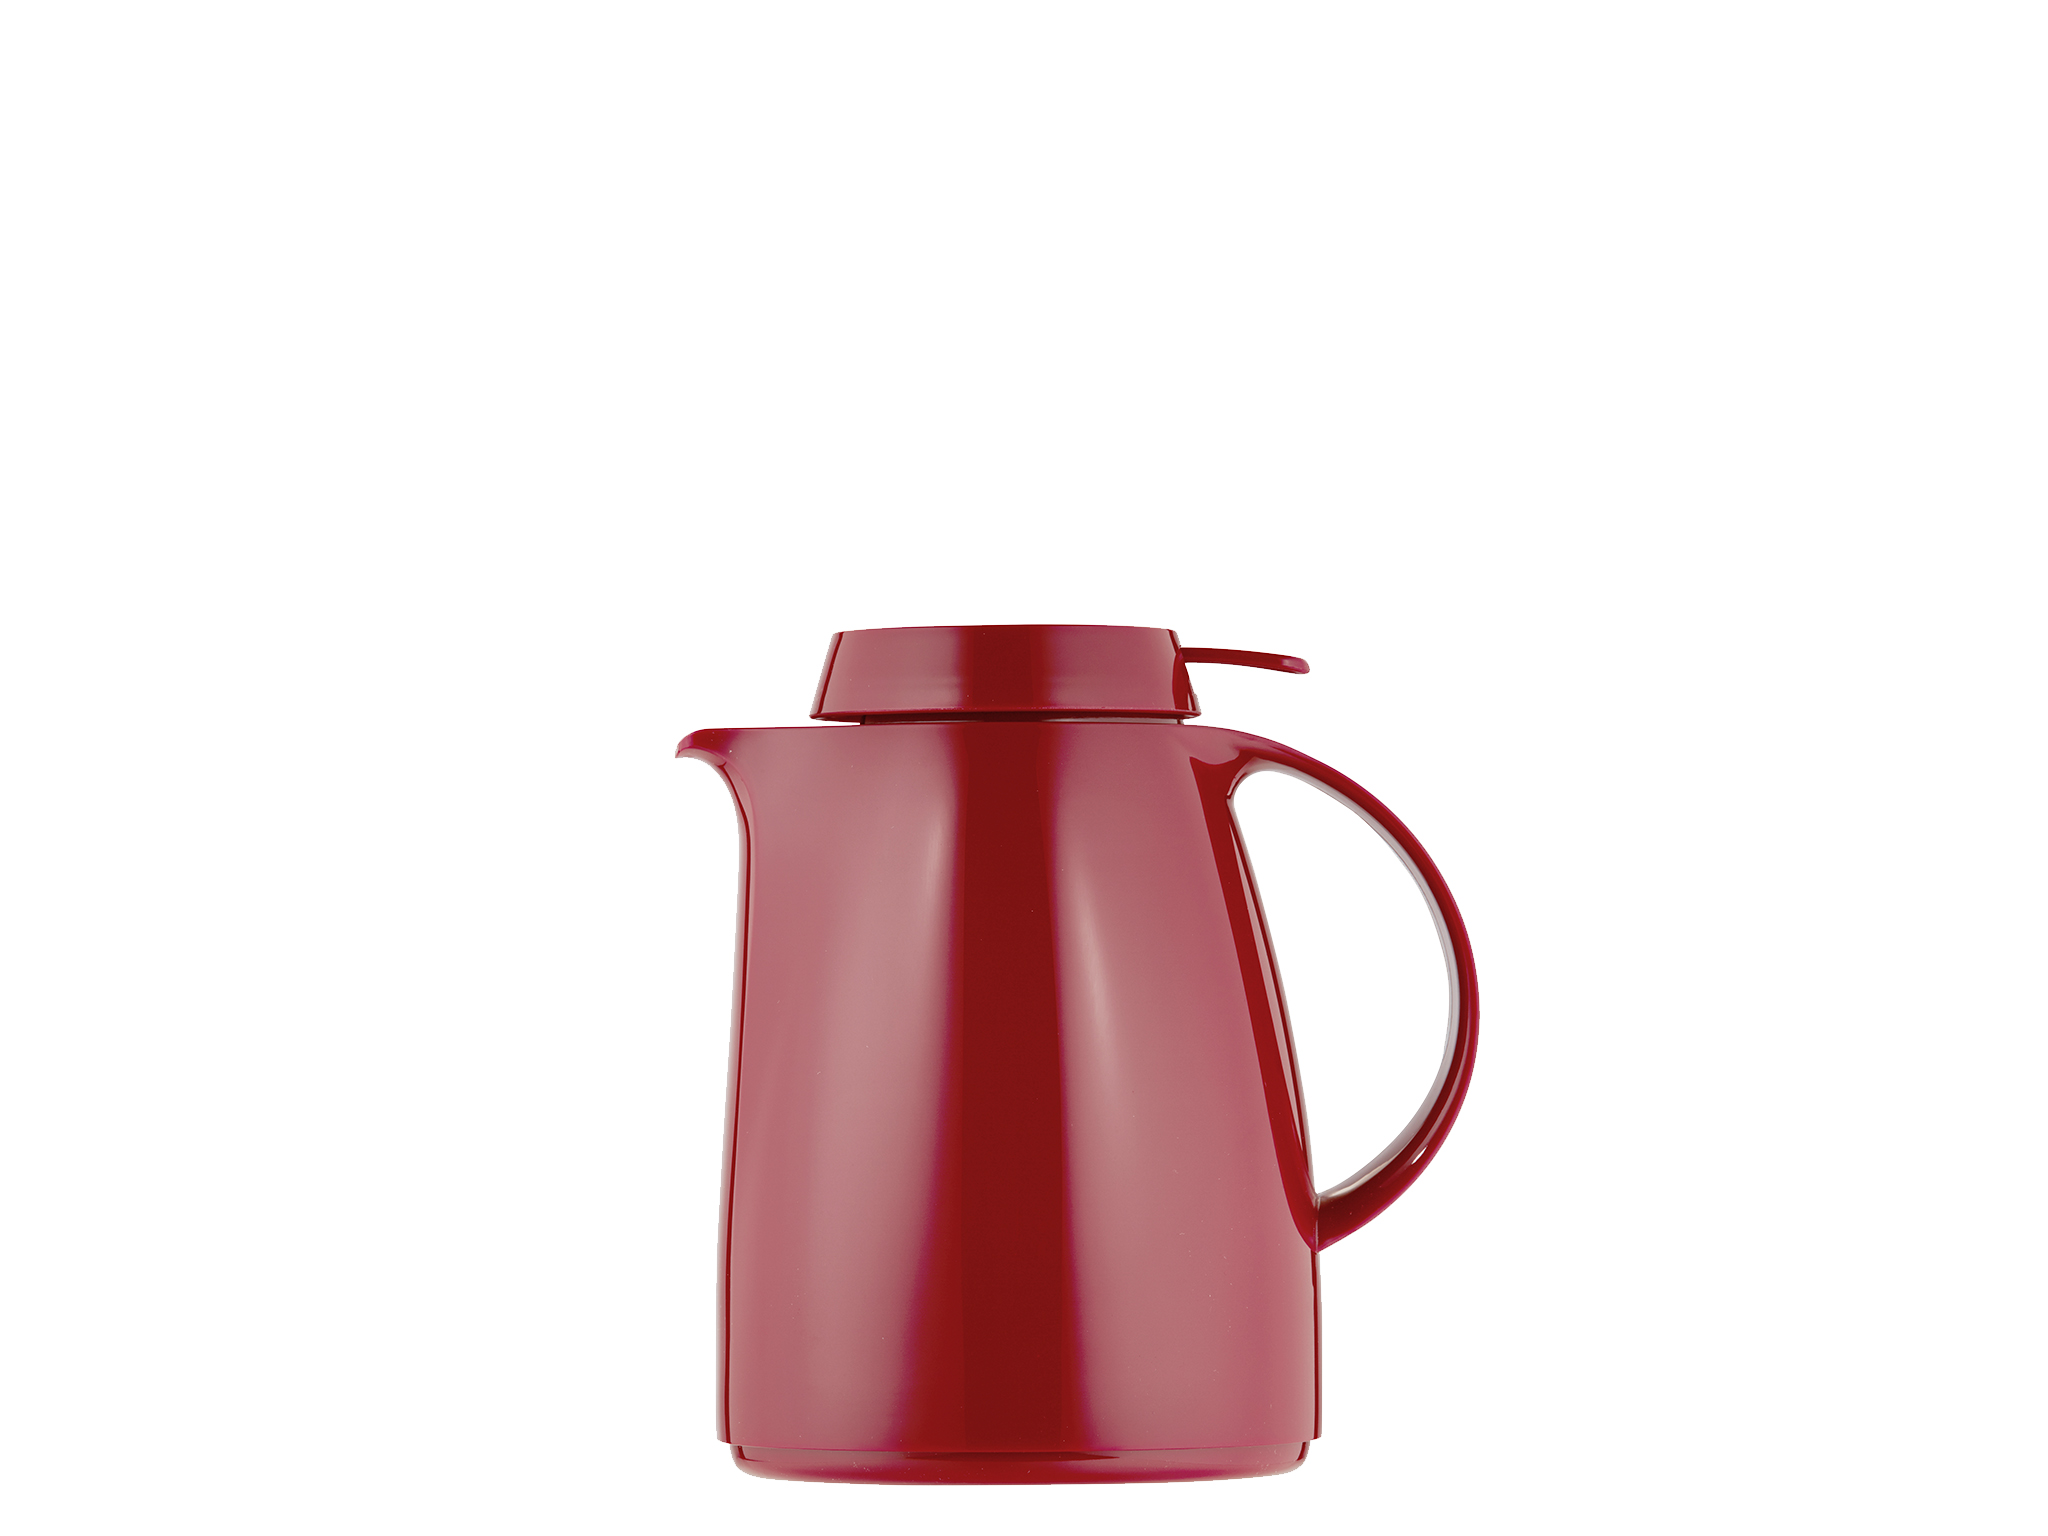 7201-046 - Vacuum carafe red 0.3 L SERVITHERM - Helios